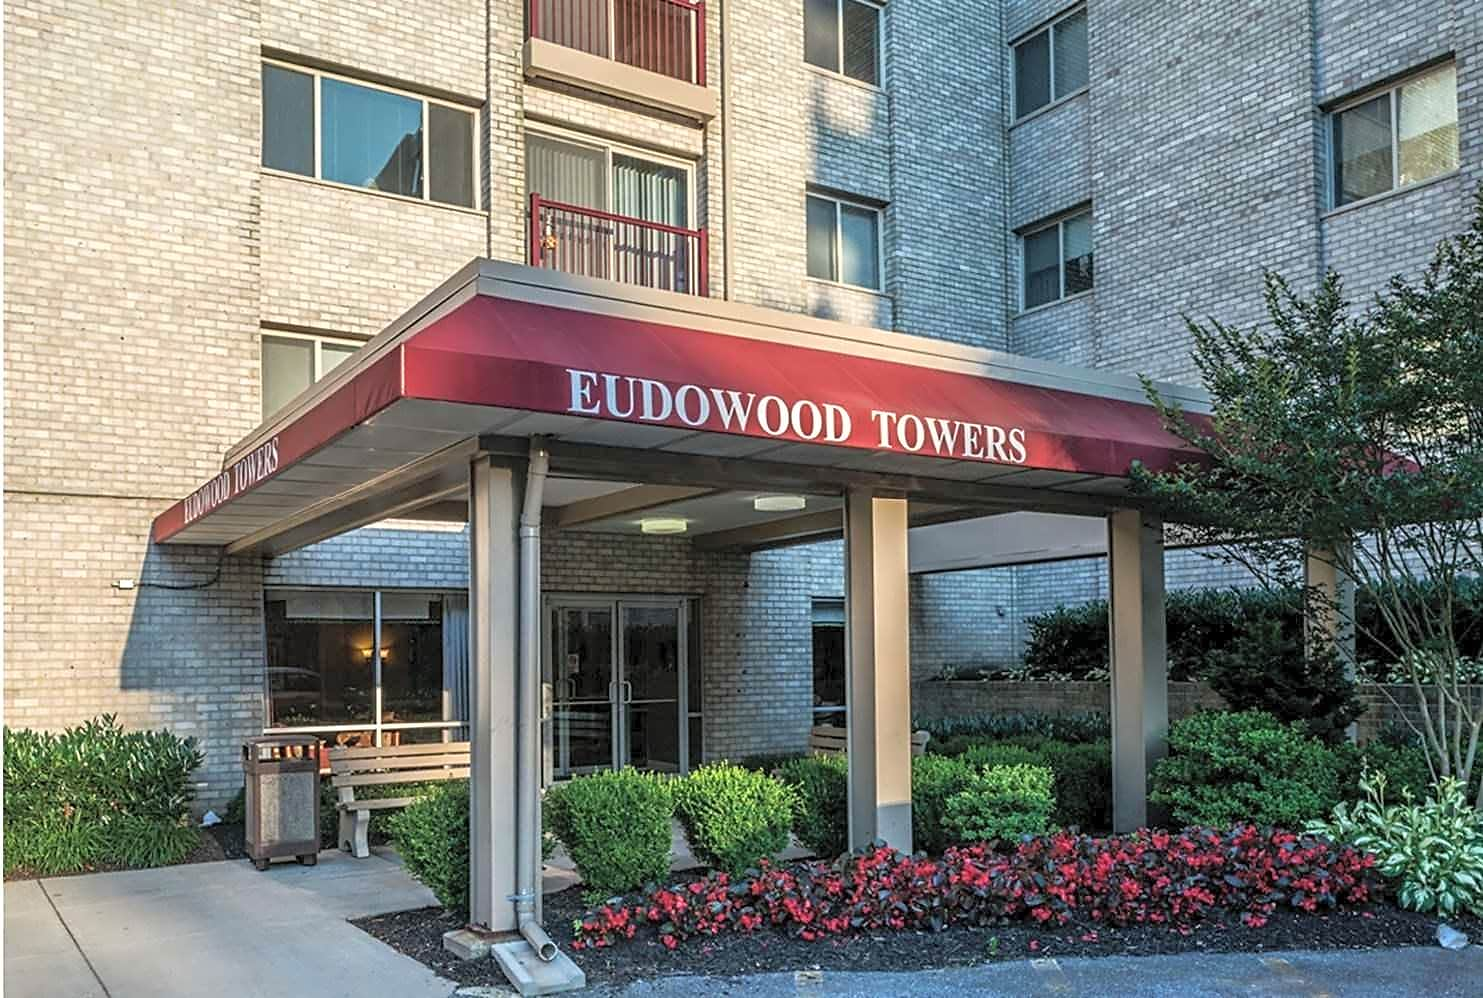 Eudowood Towers for rent in Towson